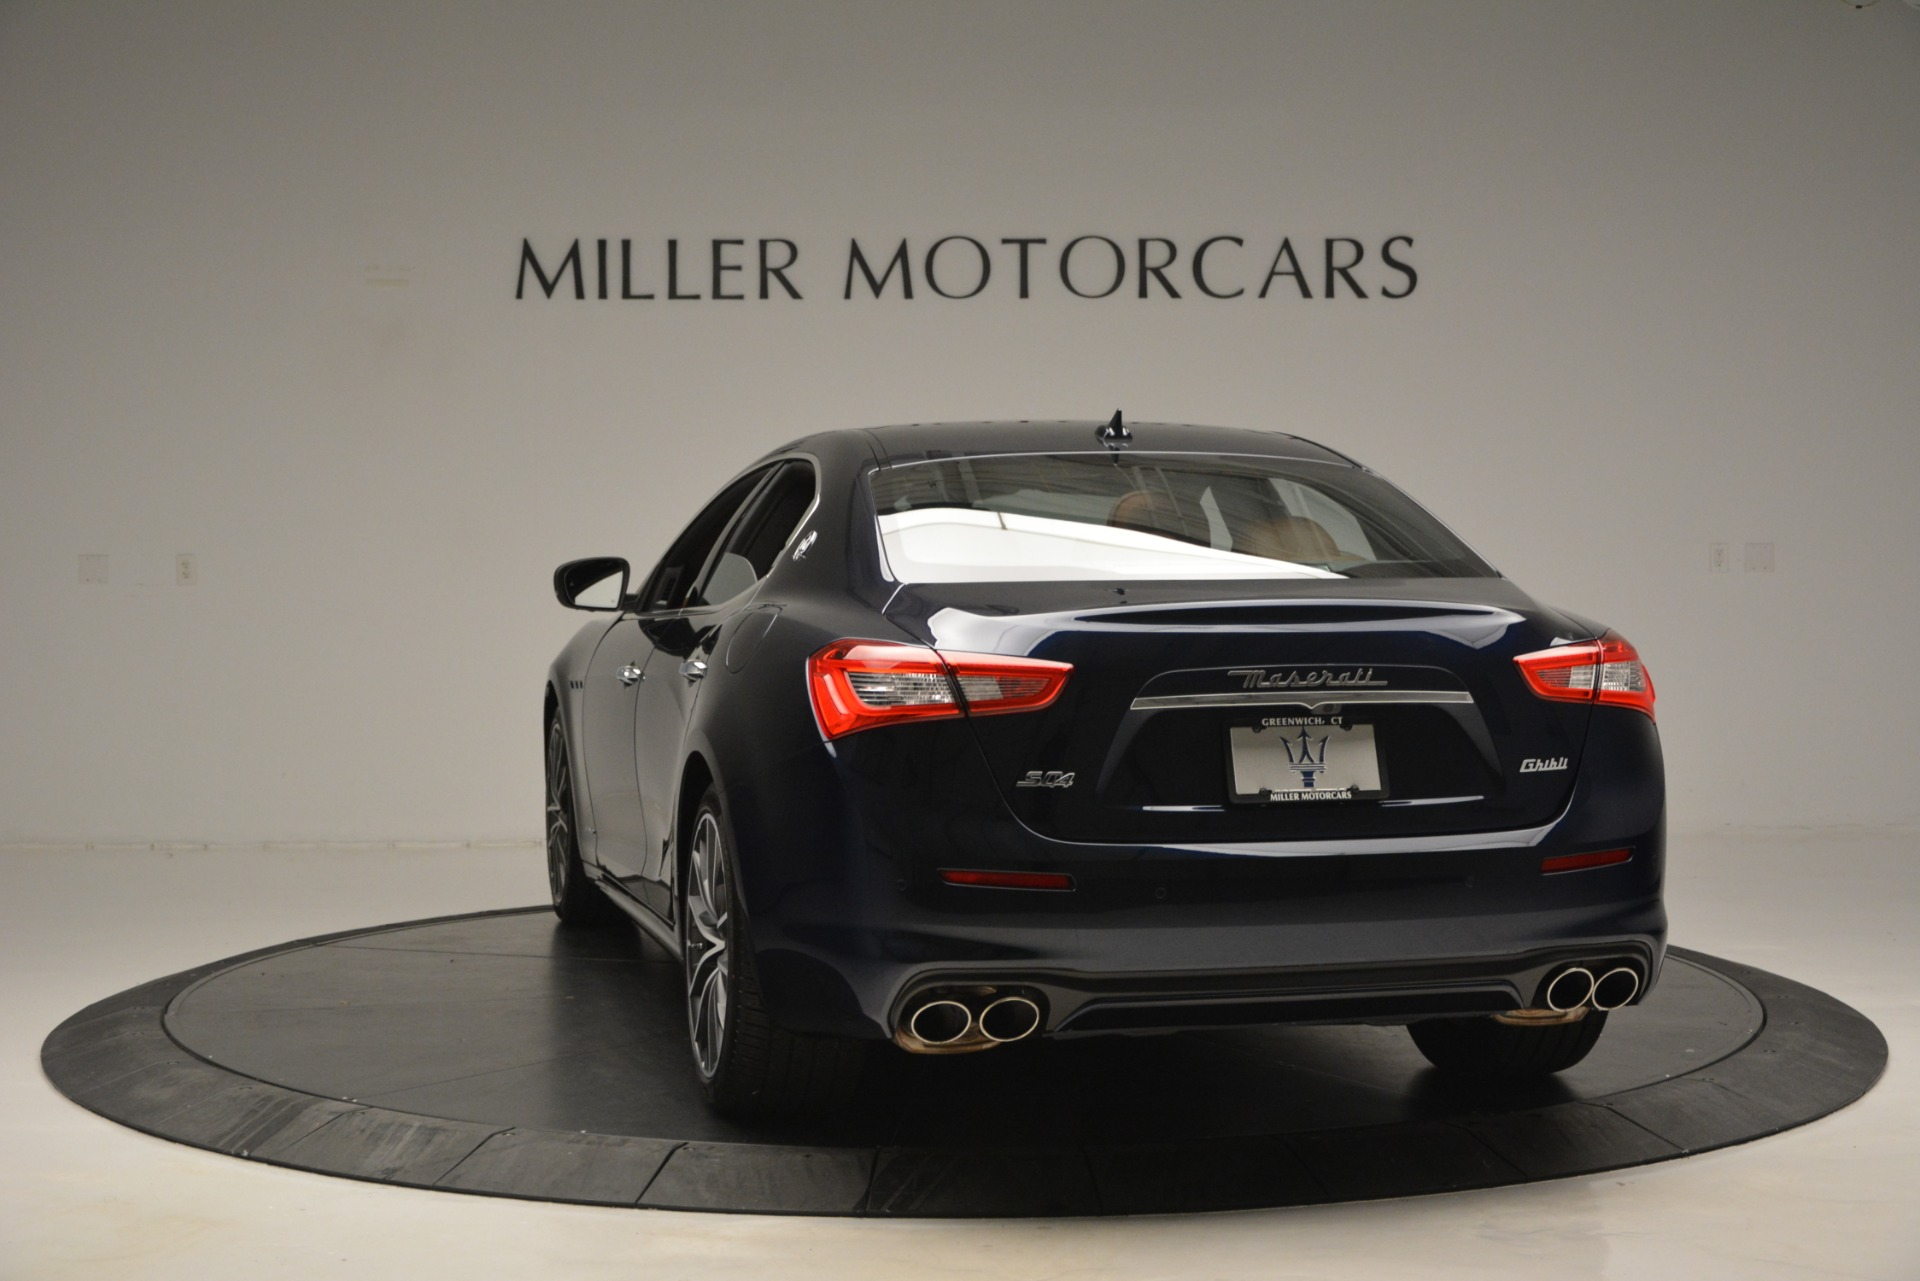 New 2019 Maserati Ghibli S Q4 GranLusso For Sale In Westport, CT 2882_p8